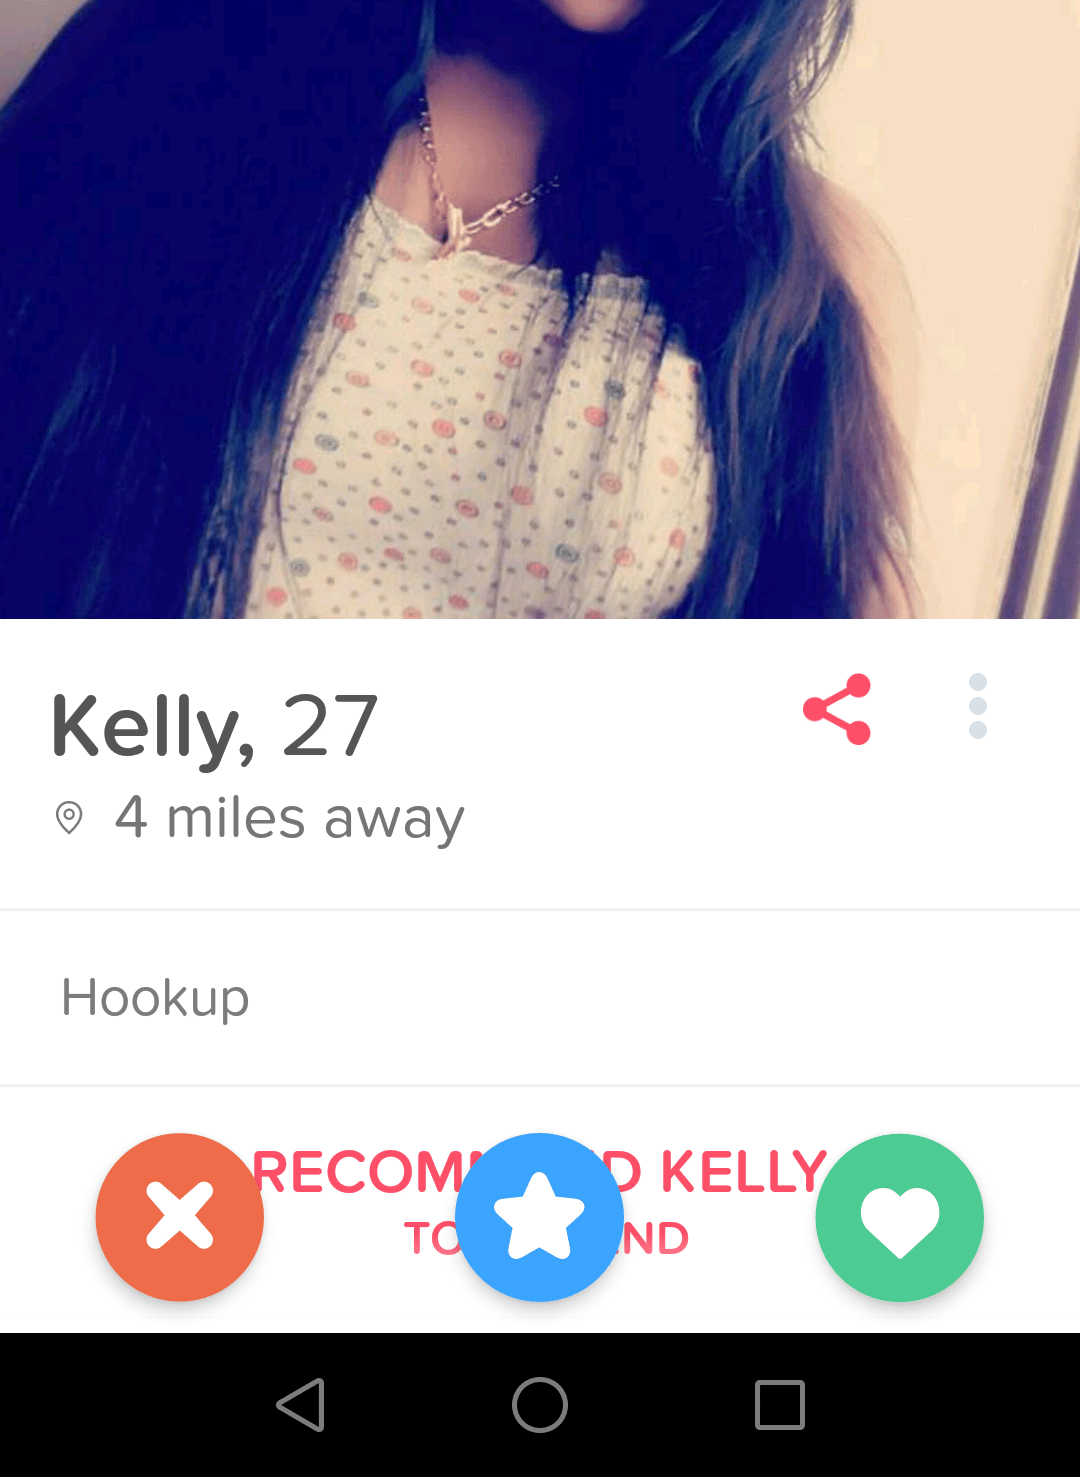 Tinder hookup how does it work